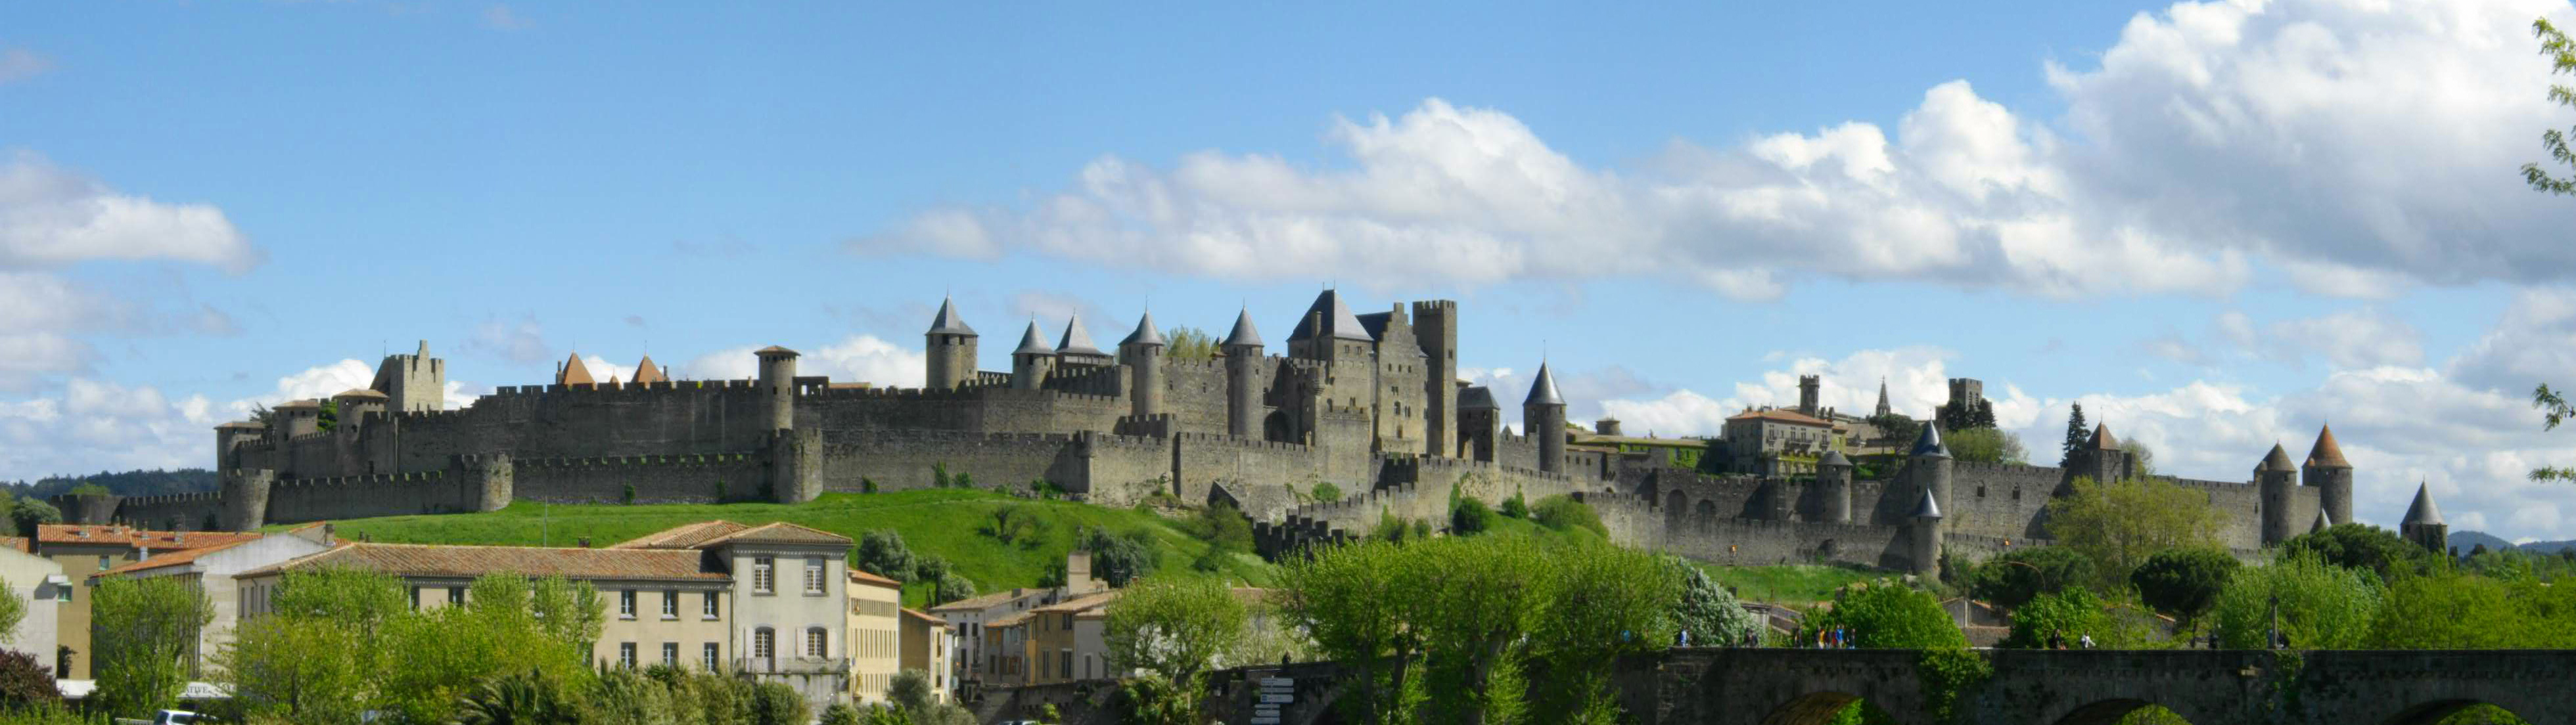 https://upload.wikimedia.org/wikipedia/commons/7/7b/Cit%C3%A9_de_Carcassonne.jpg?uselang=fr